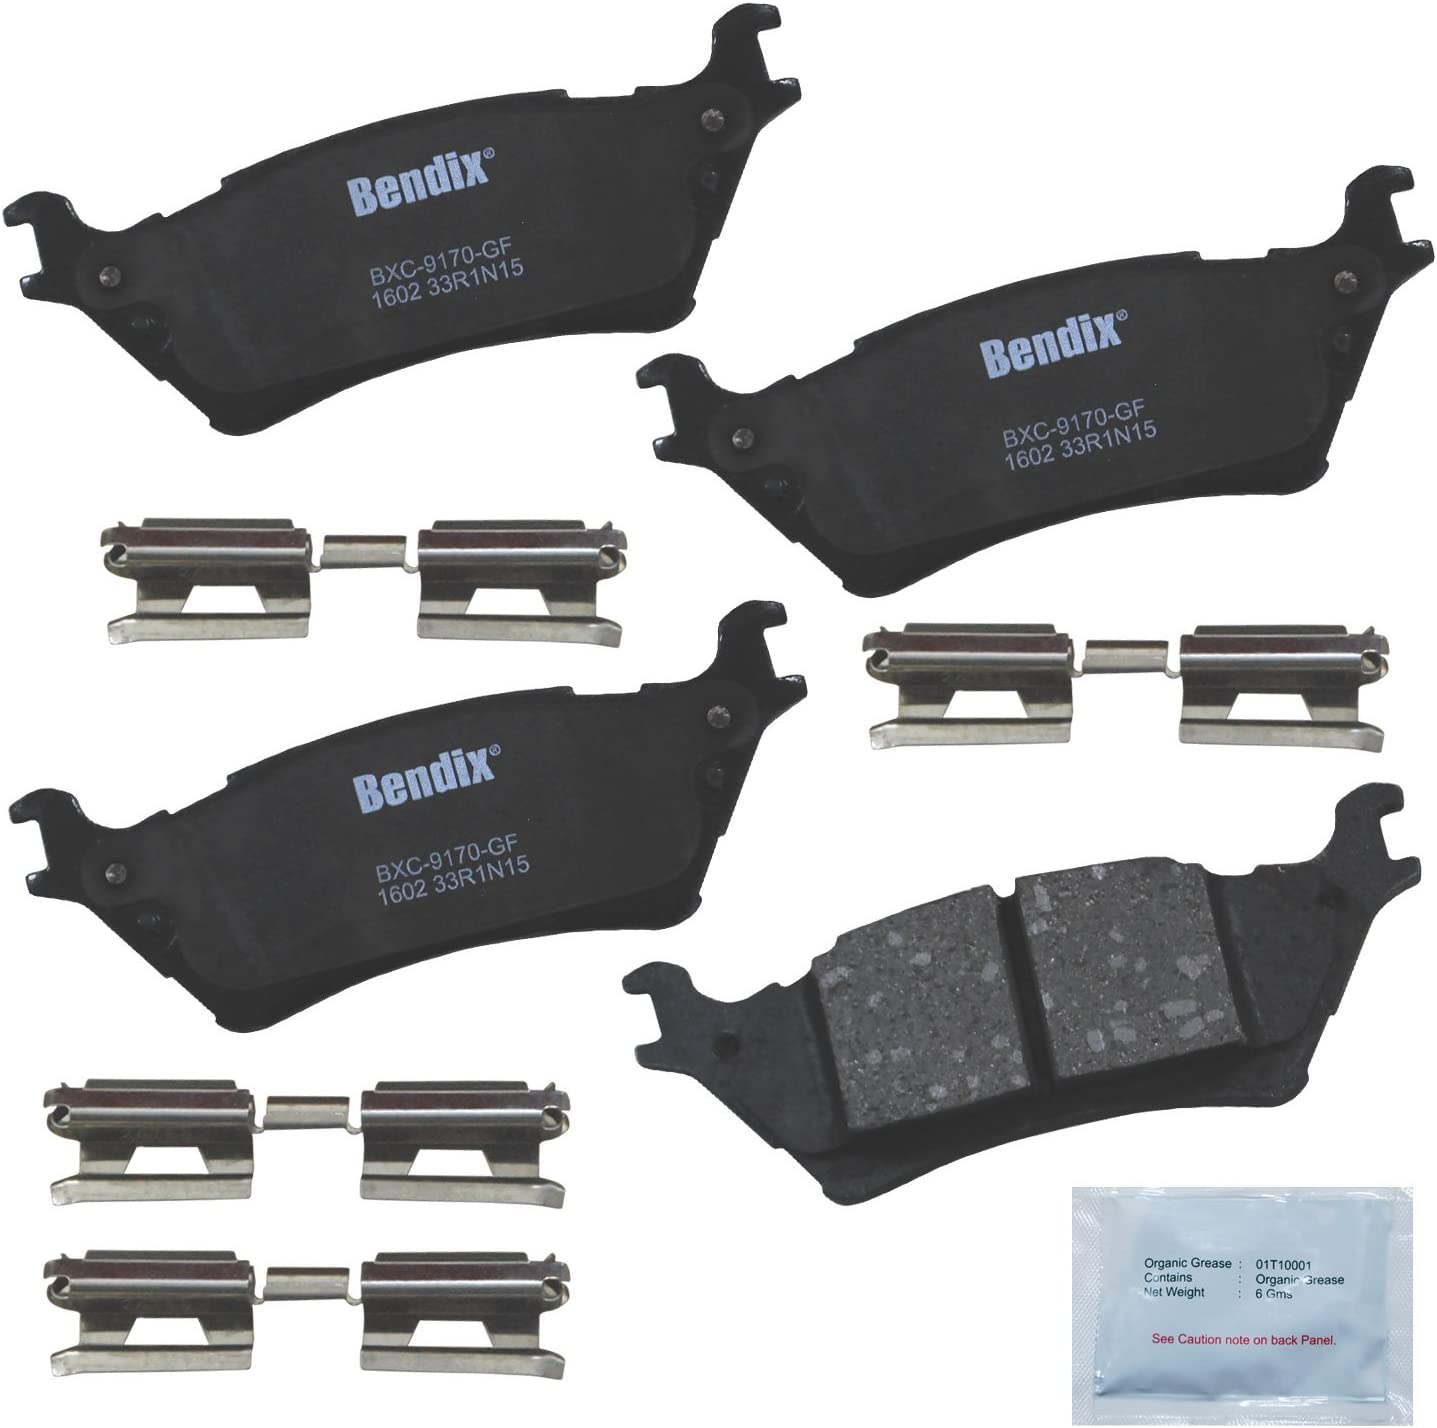 with Installation Hardware Rear Bendix Premium Copper Free CFC1602 Premium Copper Free Ceramic Brake Pad